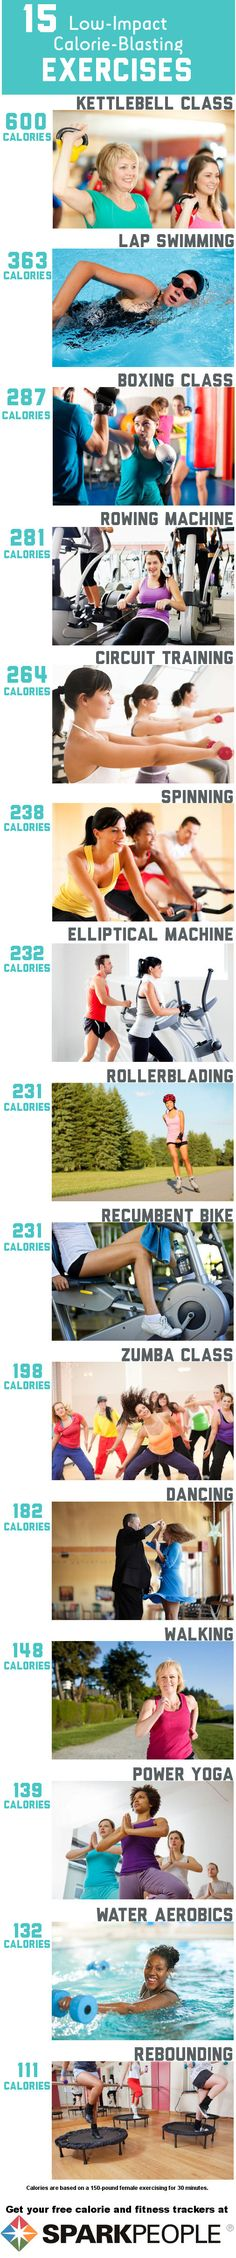 15 cardio exercises that are easy on the joints yet high in calories burned! | via @SparkPeople #fitness #workout #lowimpact